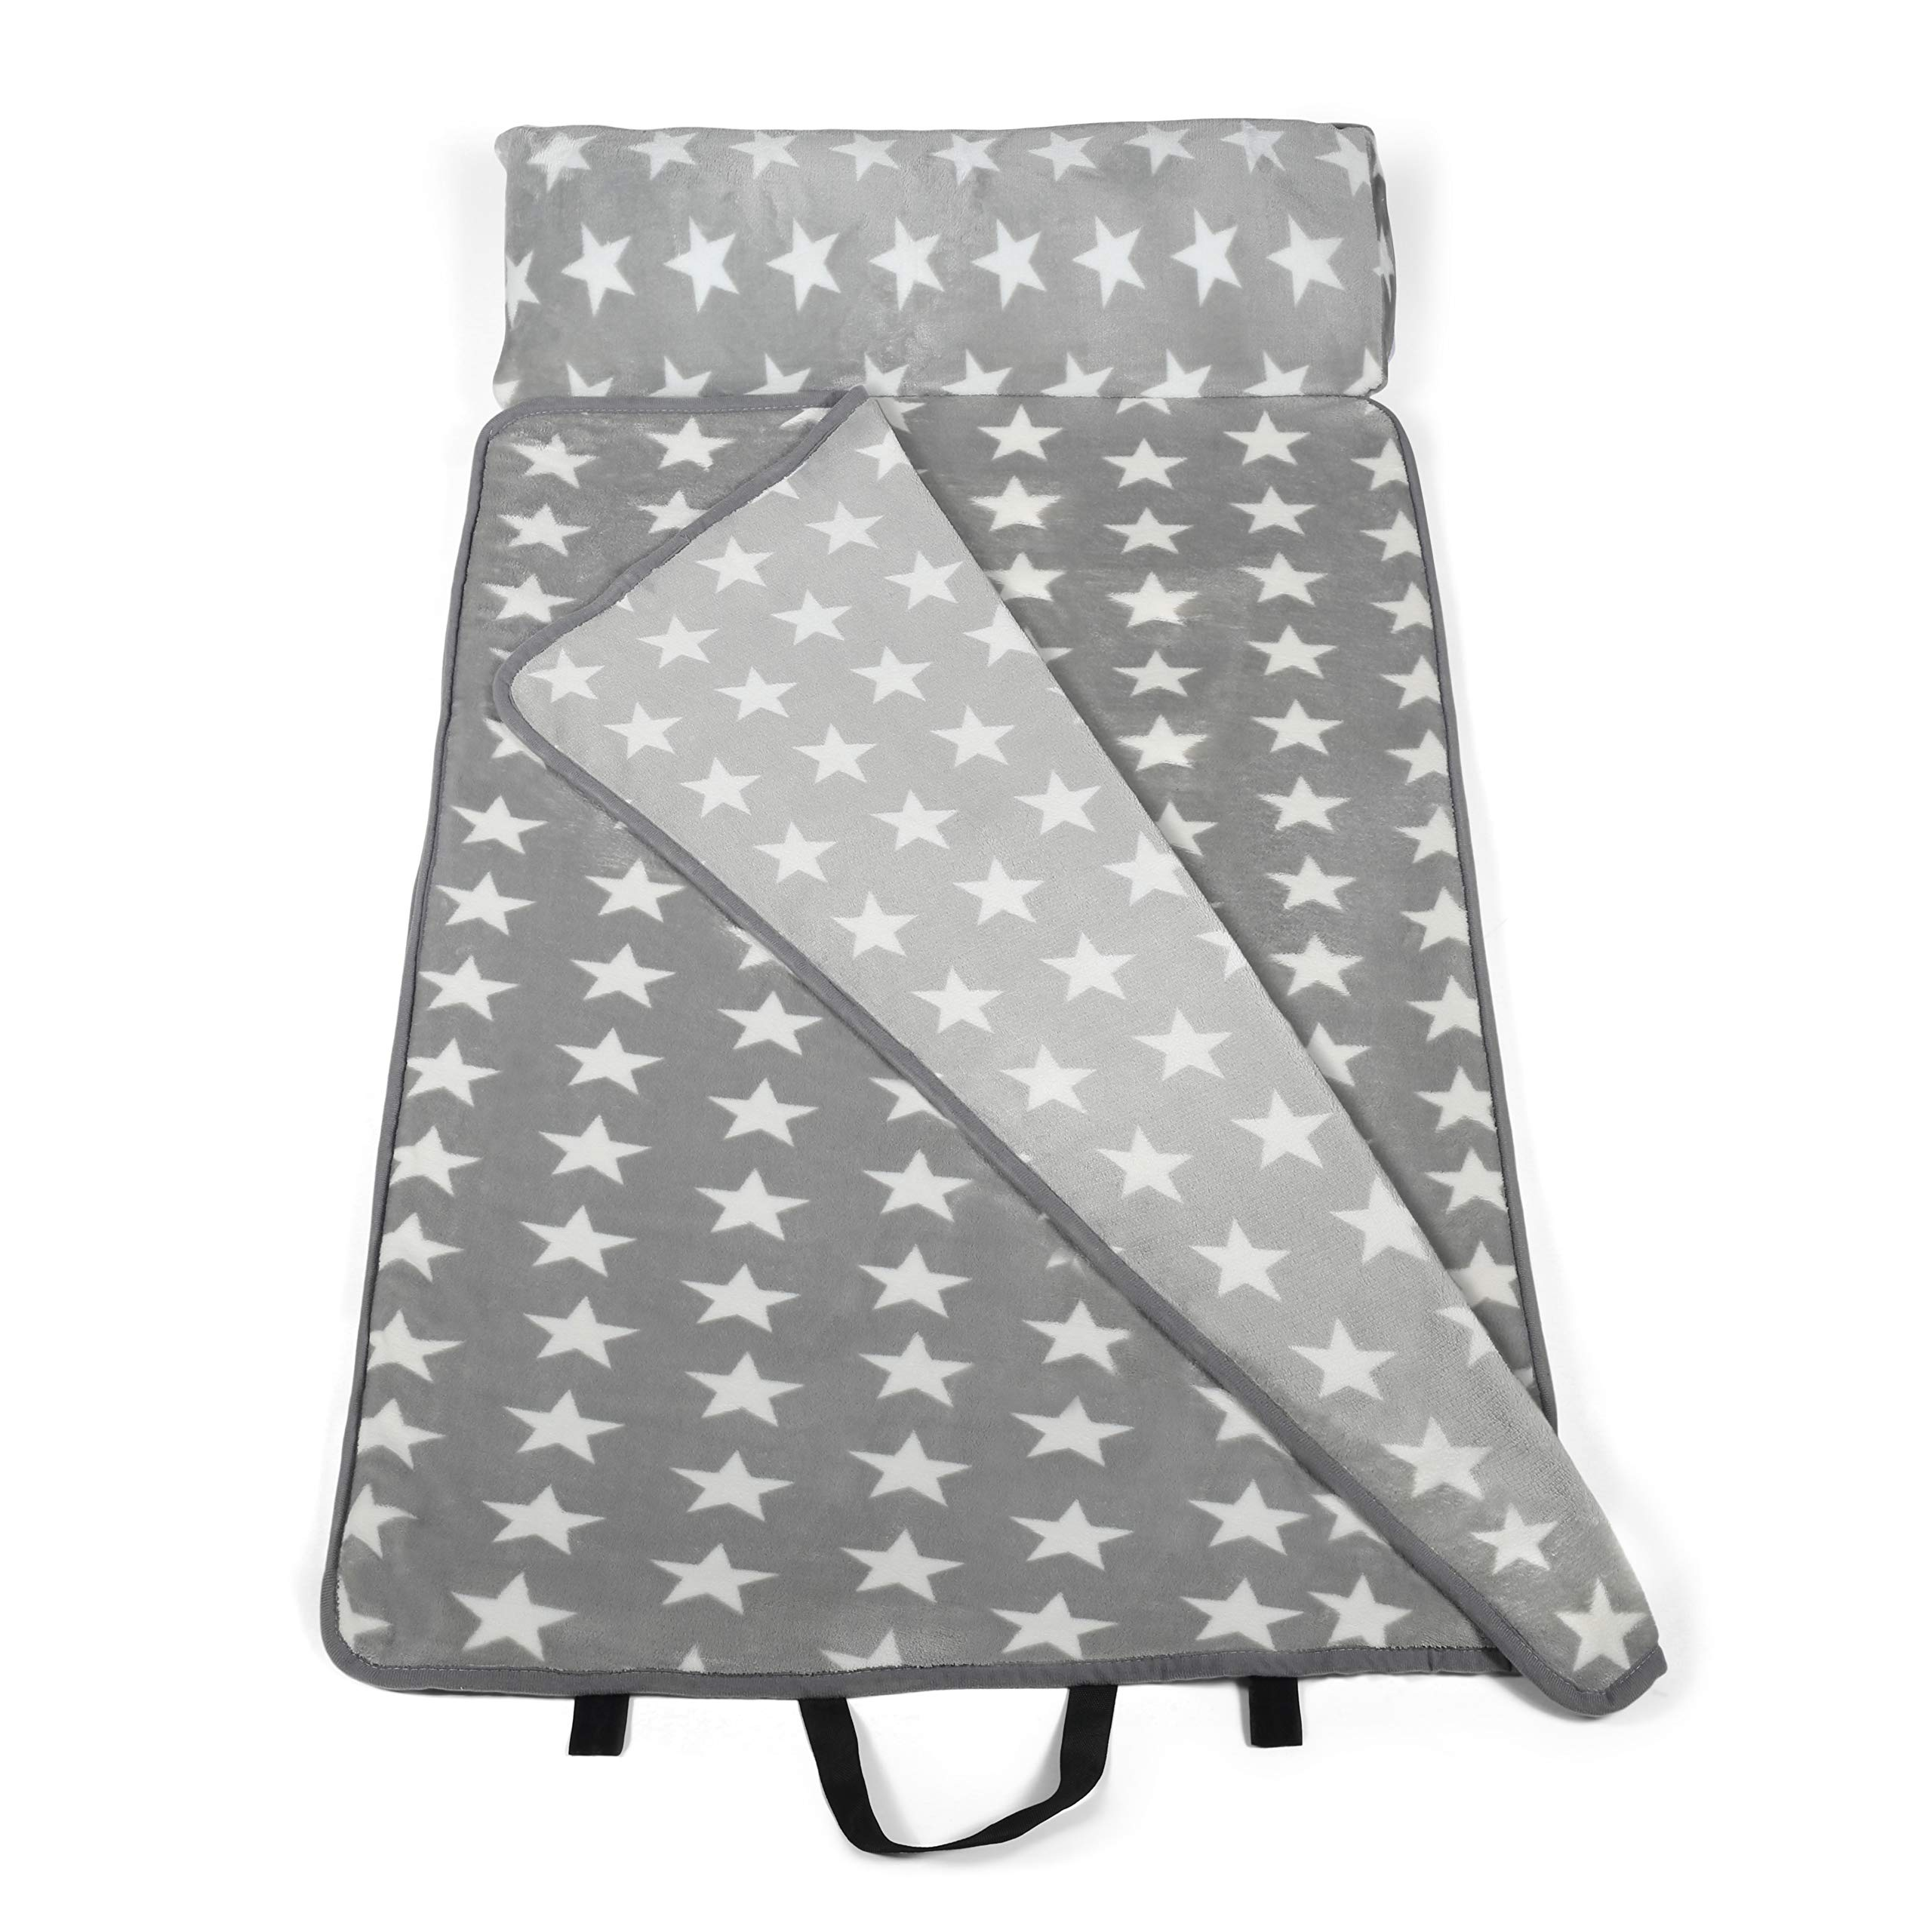 Milliard -Memory Foam- Nap Mat Roll Stars with Fuzzy Blanket and Removable Pillow, Machine Washing for Toddler Daycare Preschool Kindergarten and Sleepovers by Milliard (Image #1)